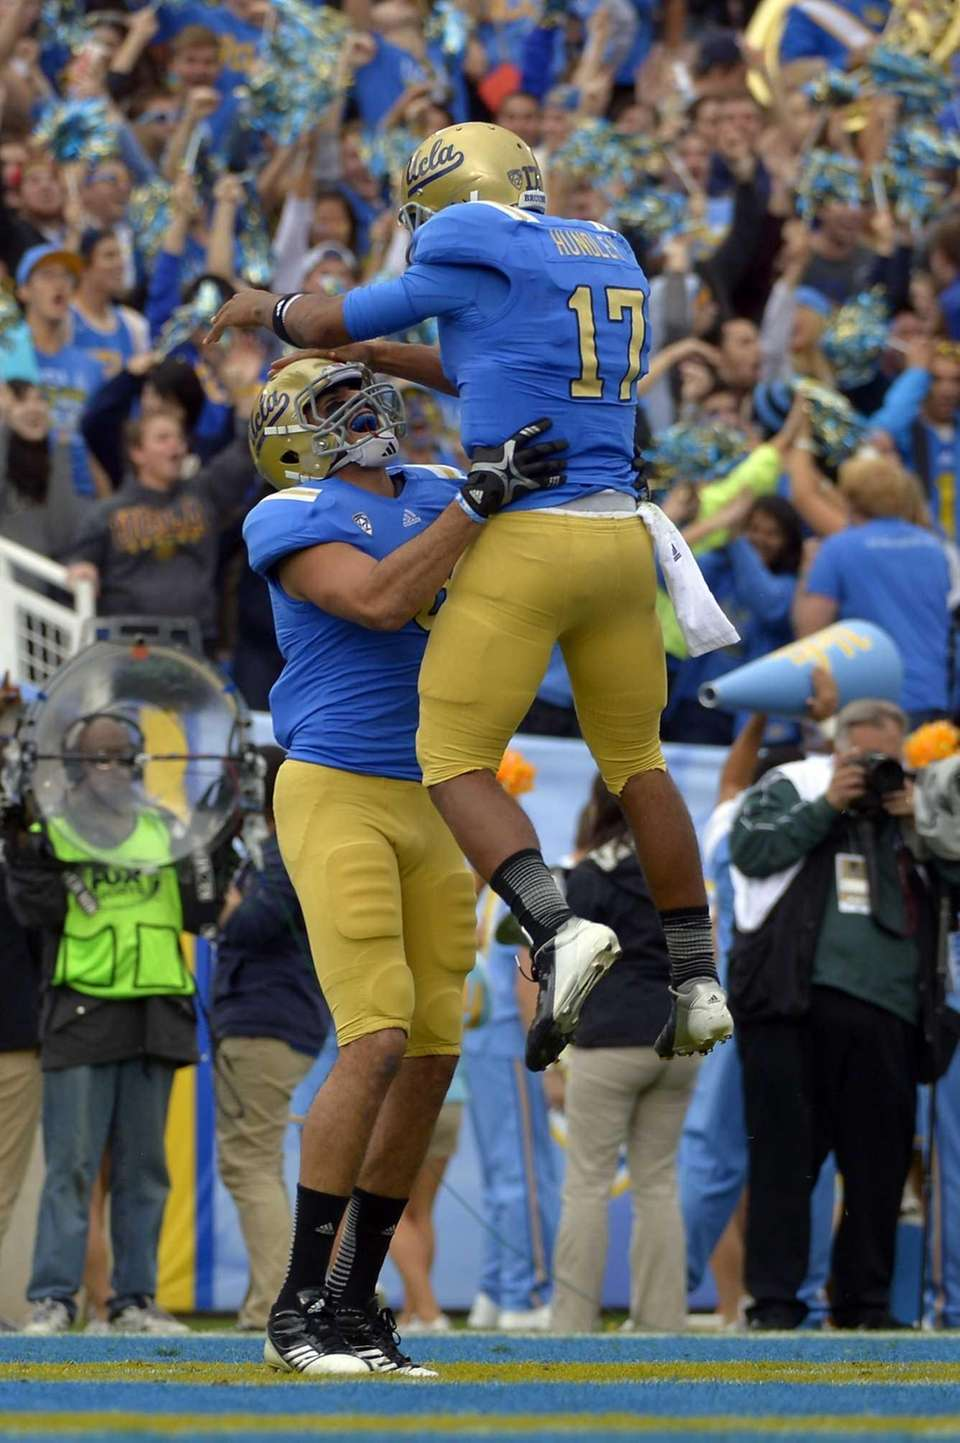 UCLA quarterback Brett Hundley, right, jumps into the